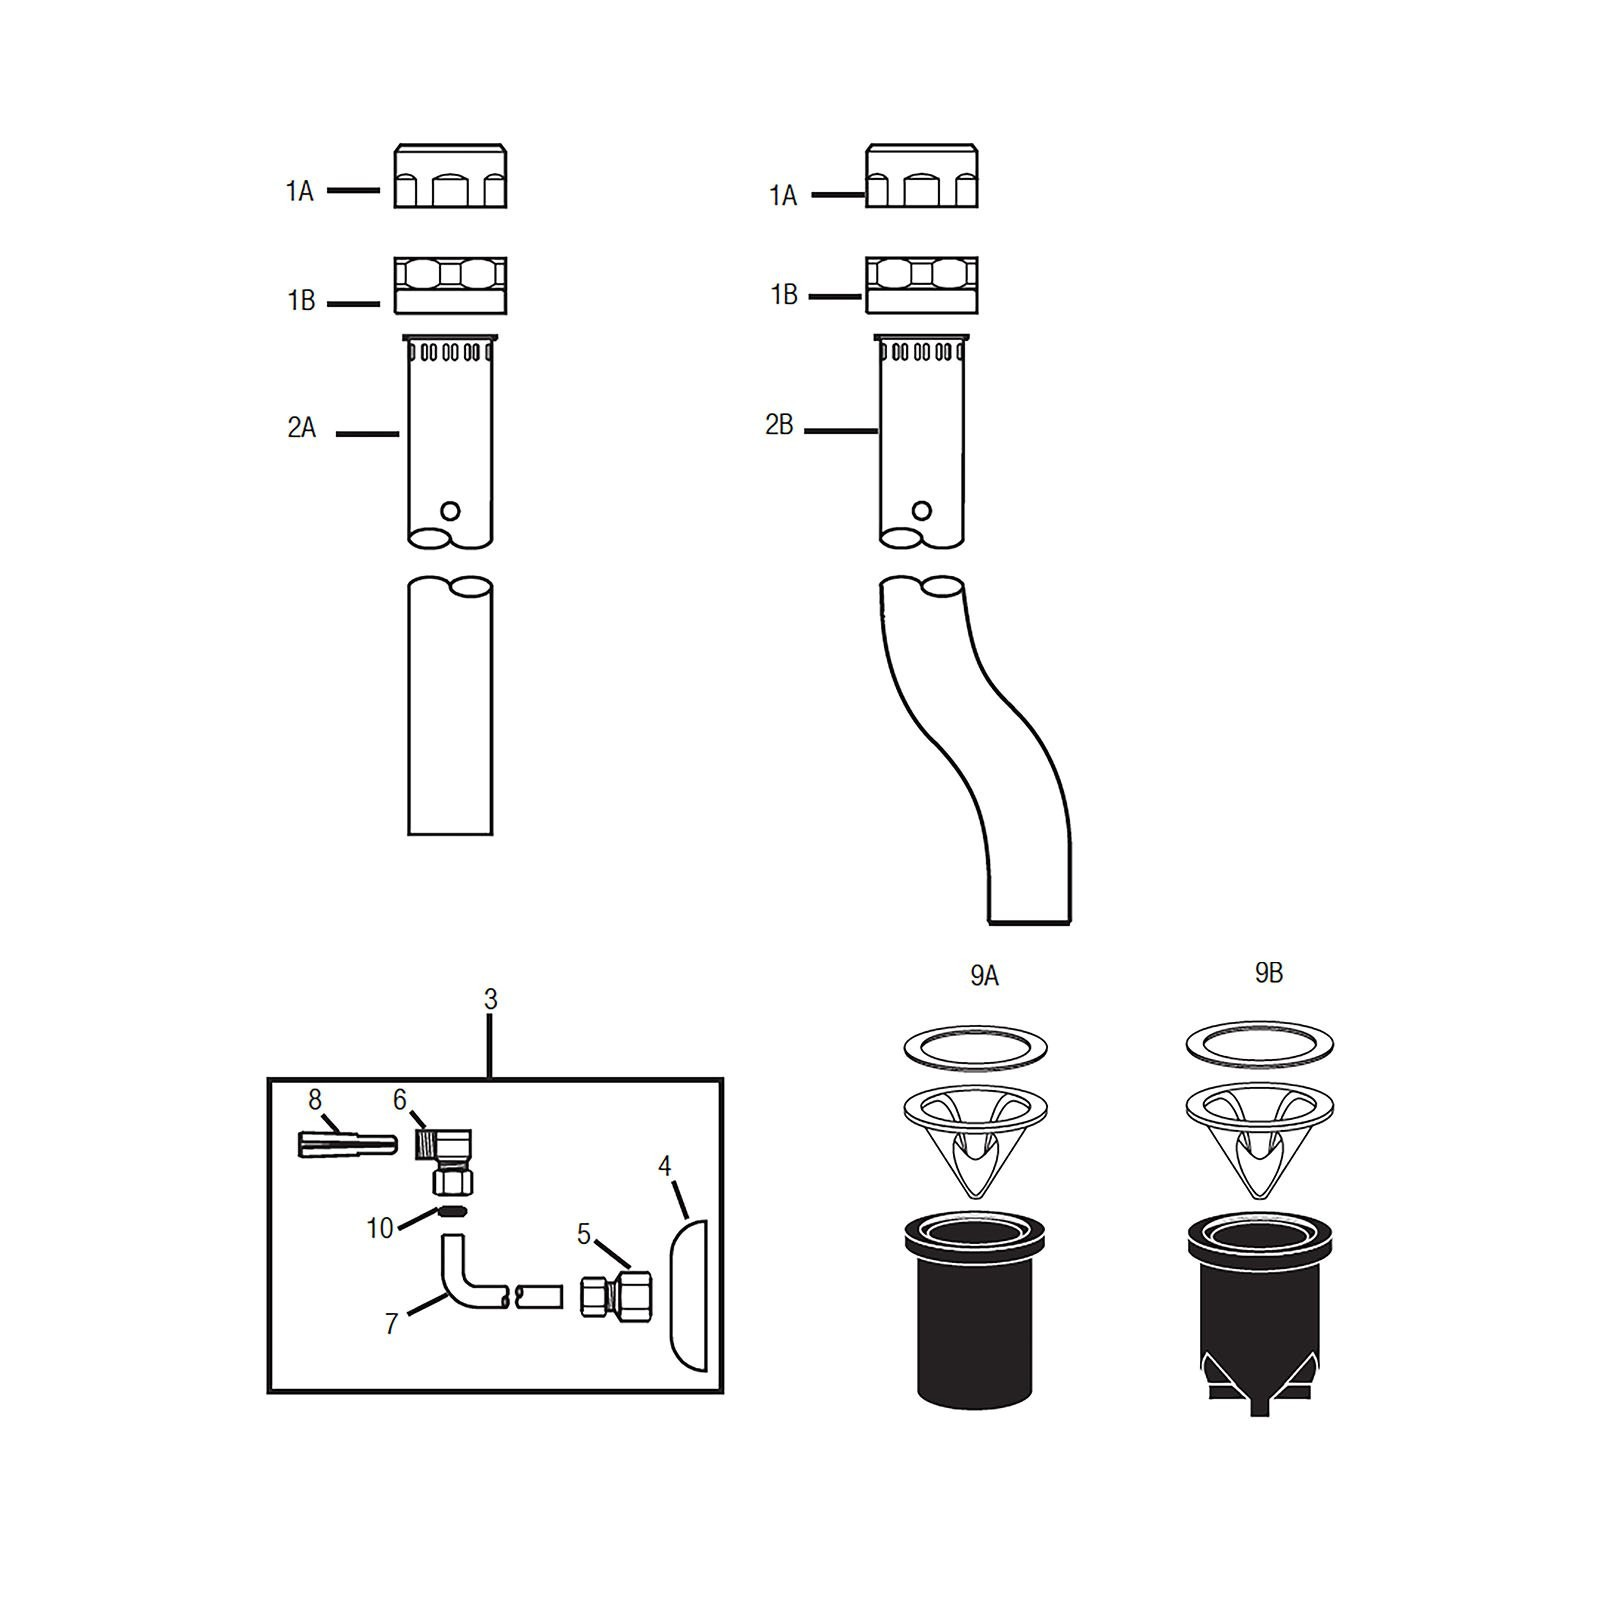 Wiring Diagram Home Reference Fset Wrench Unfor Table Flushometer Diagram 0d Wire Diagram 1600